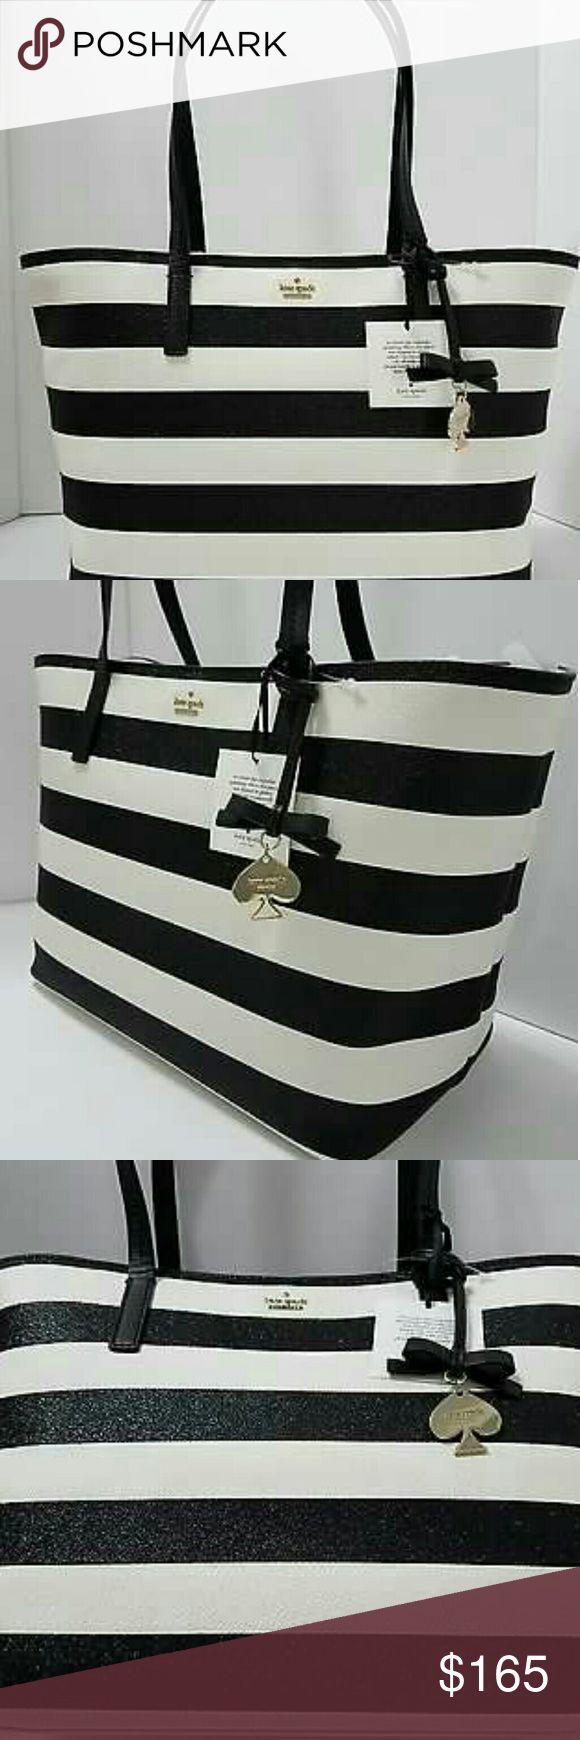 Kate Spade Glitter Hawthorne Lane Ryan Brand New with tag and 100% Authentic Guaranteed? Kate Spade Hawthorne Lane Ryan Striped Glitter Tote Bag - Black/White  Tote kate spade new york's perfectly preppy striped shopper everywhere this season, whether it's the boardroom, beach or brunch. Glittering stripes add a dash of glamour to a perfectly proportioned tote accented by a dangling spade charm.  -Glittering stripes add a dash of glamour  -Double handles with Clasp closure; lined  -Interior…